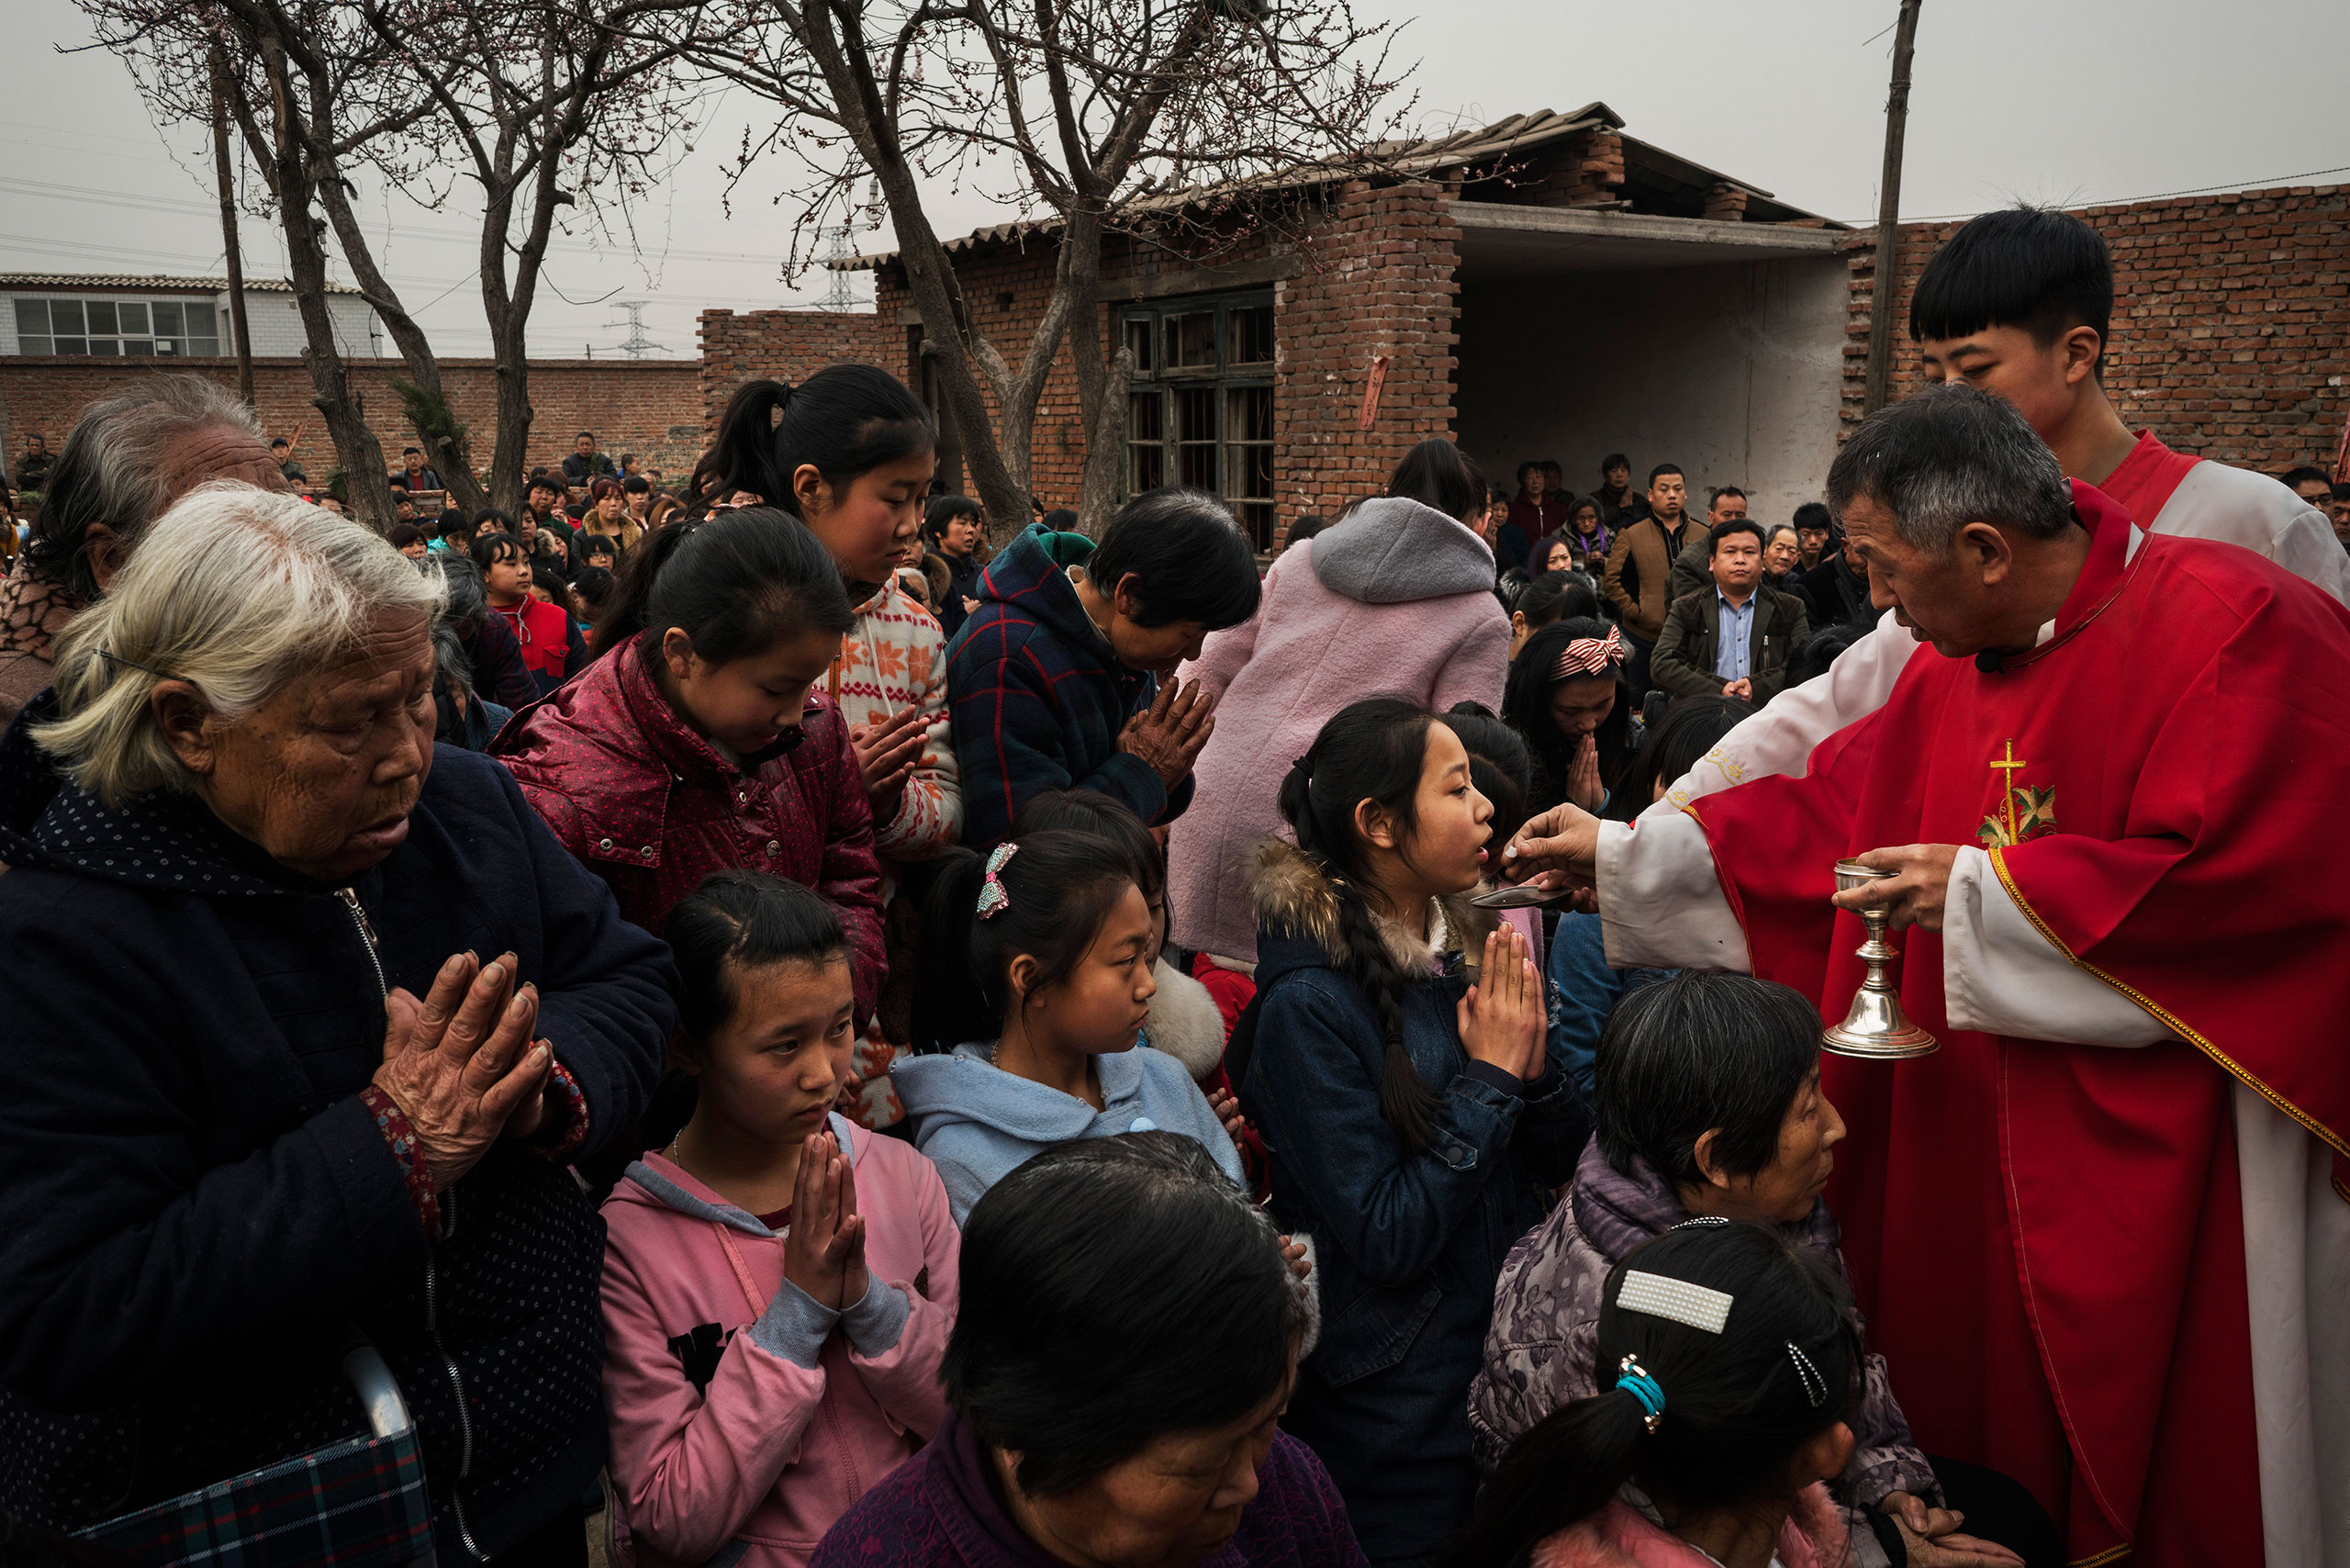 Villagers receive Communion from dissident Catholic Priest Dong Baolu at an underground Palm Sunday service in the yard of a house in Youtong village, Shijiazhuang, China, March 20, 2016.